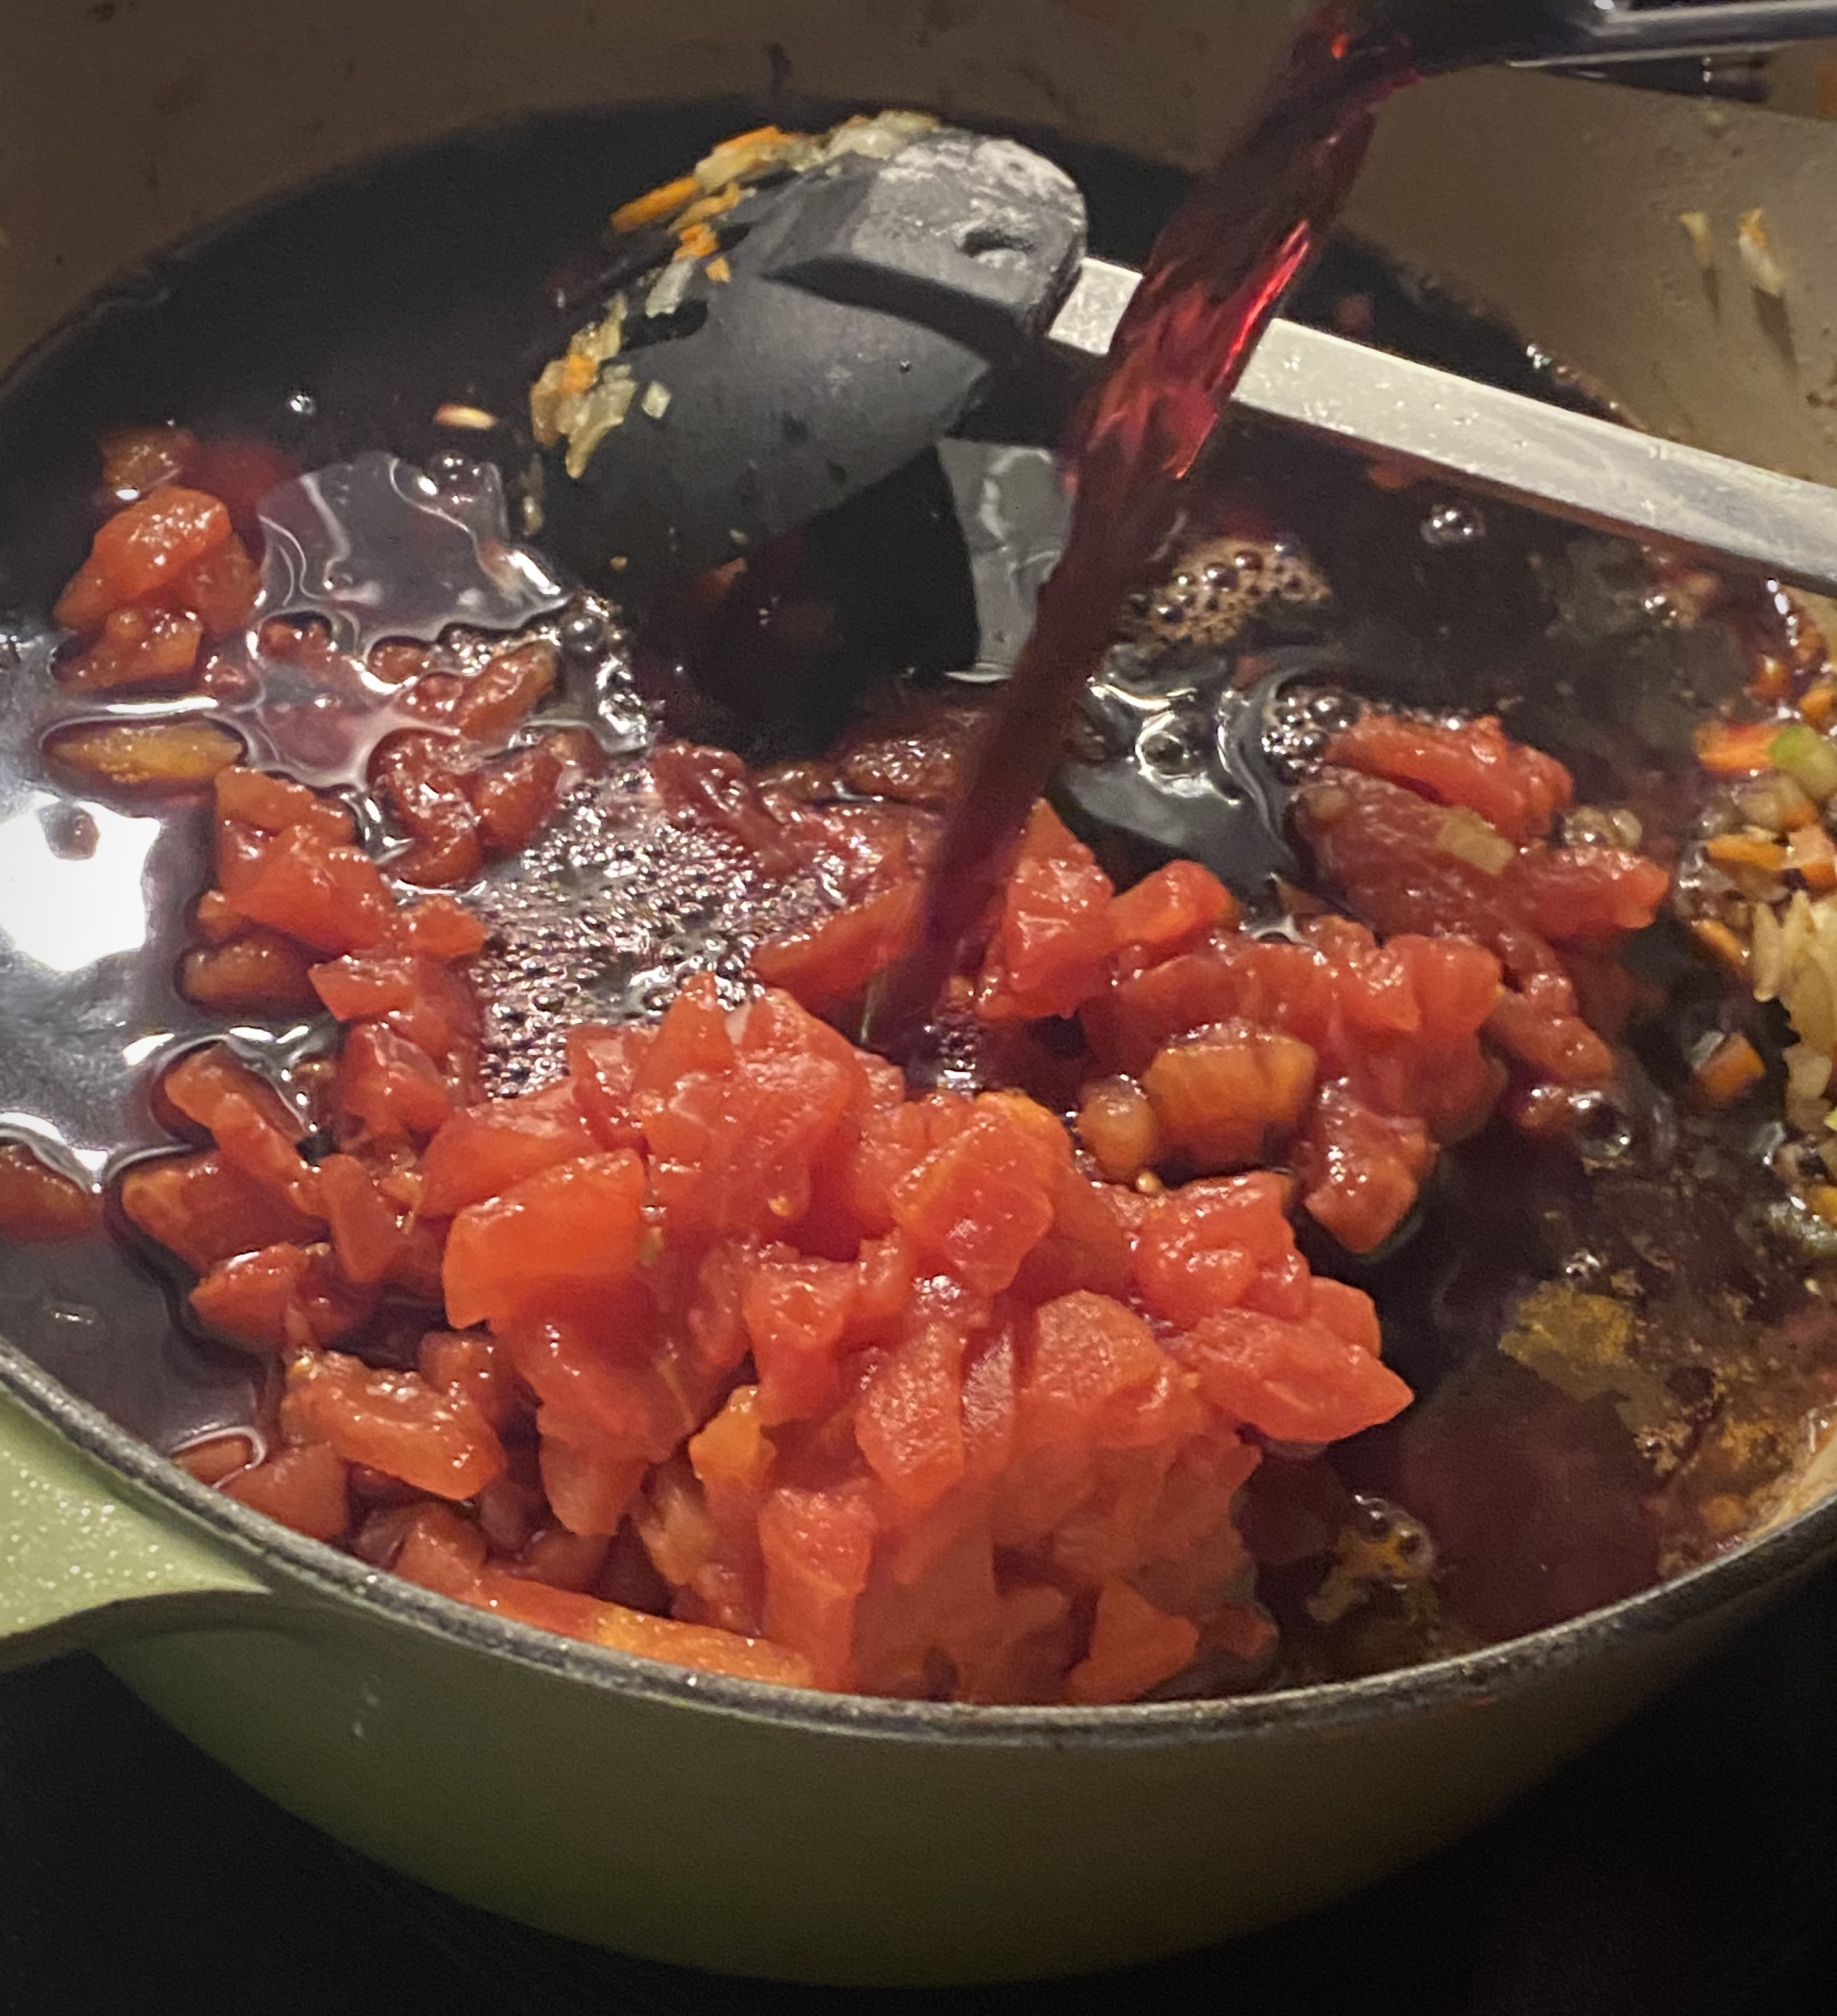 red wine being poured into dutch oven with tomatoes and mirepoix mix for braising short ribs